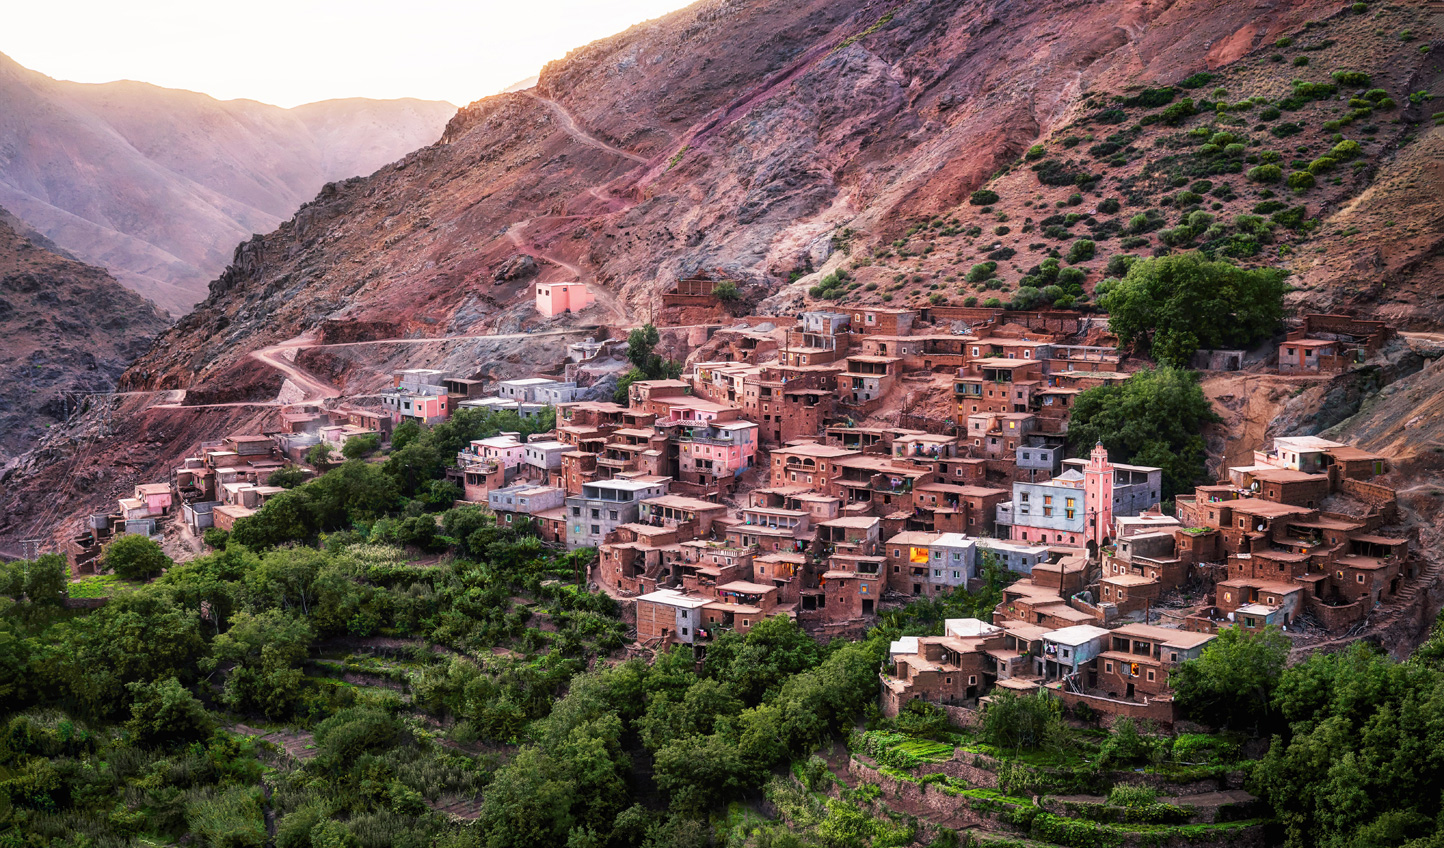 Get to know berber culture out in the mountains